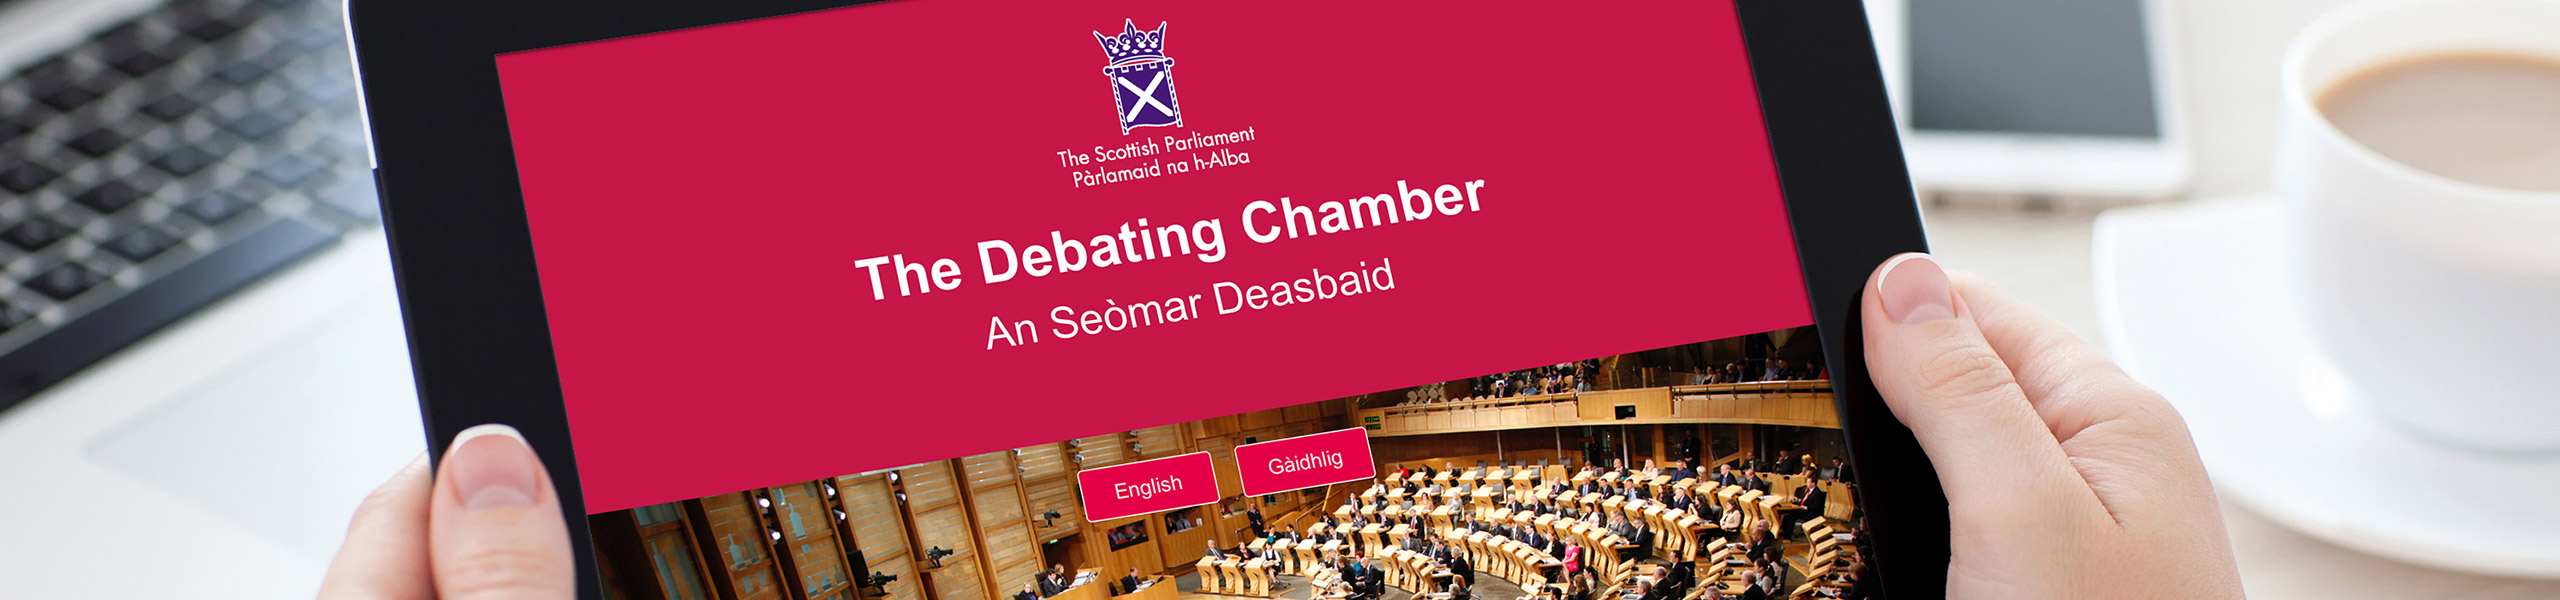 scottish parliament chamber app home screen